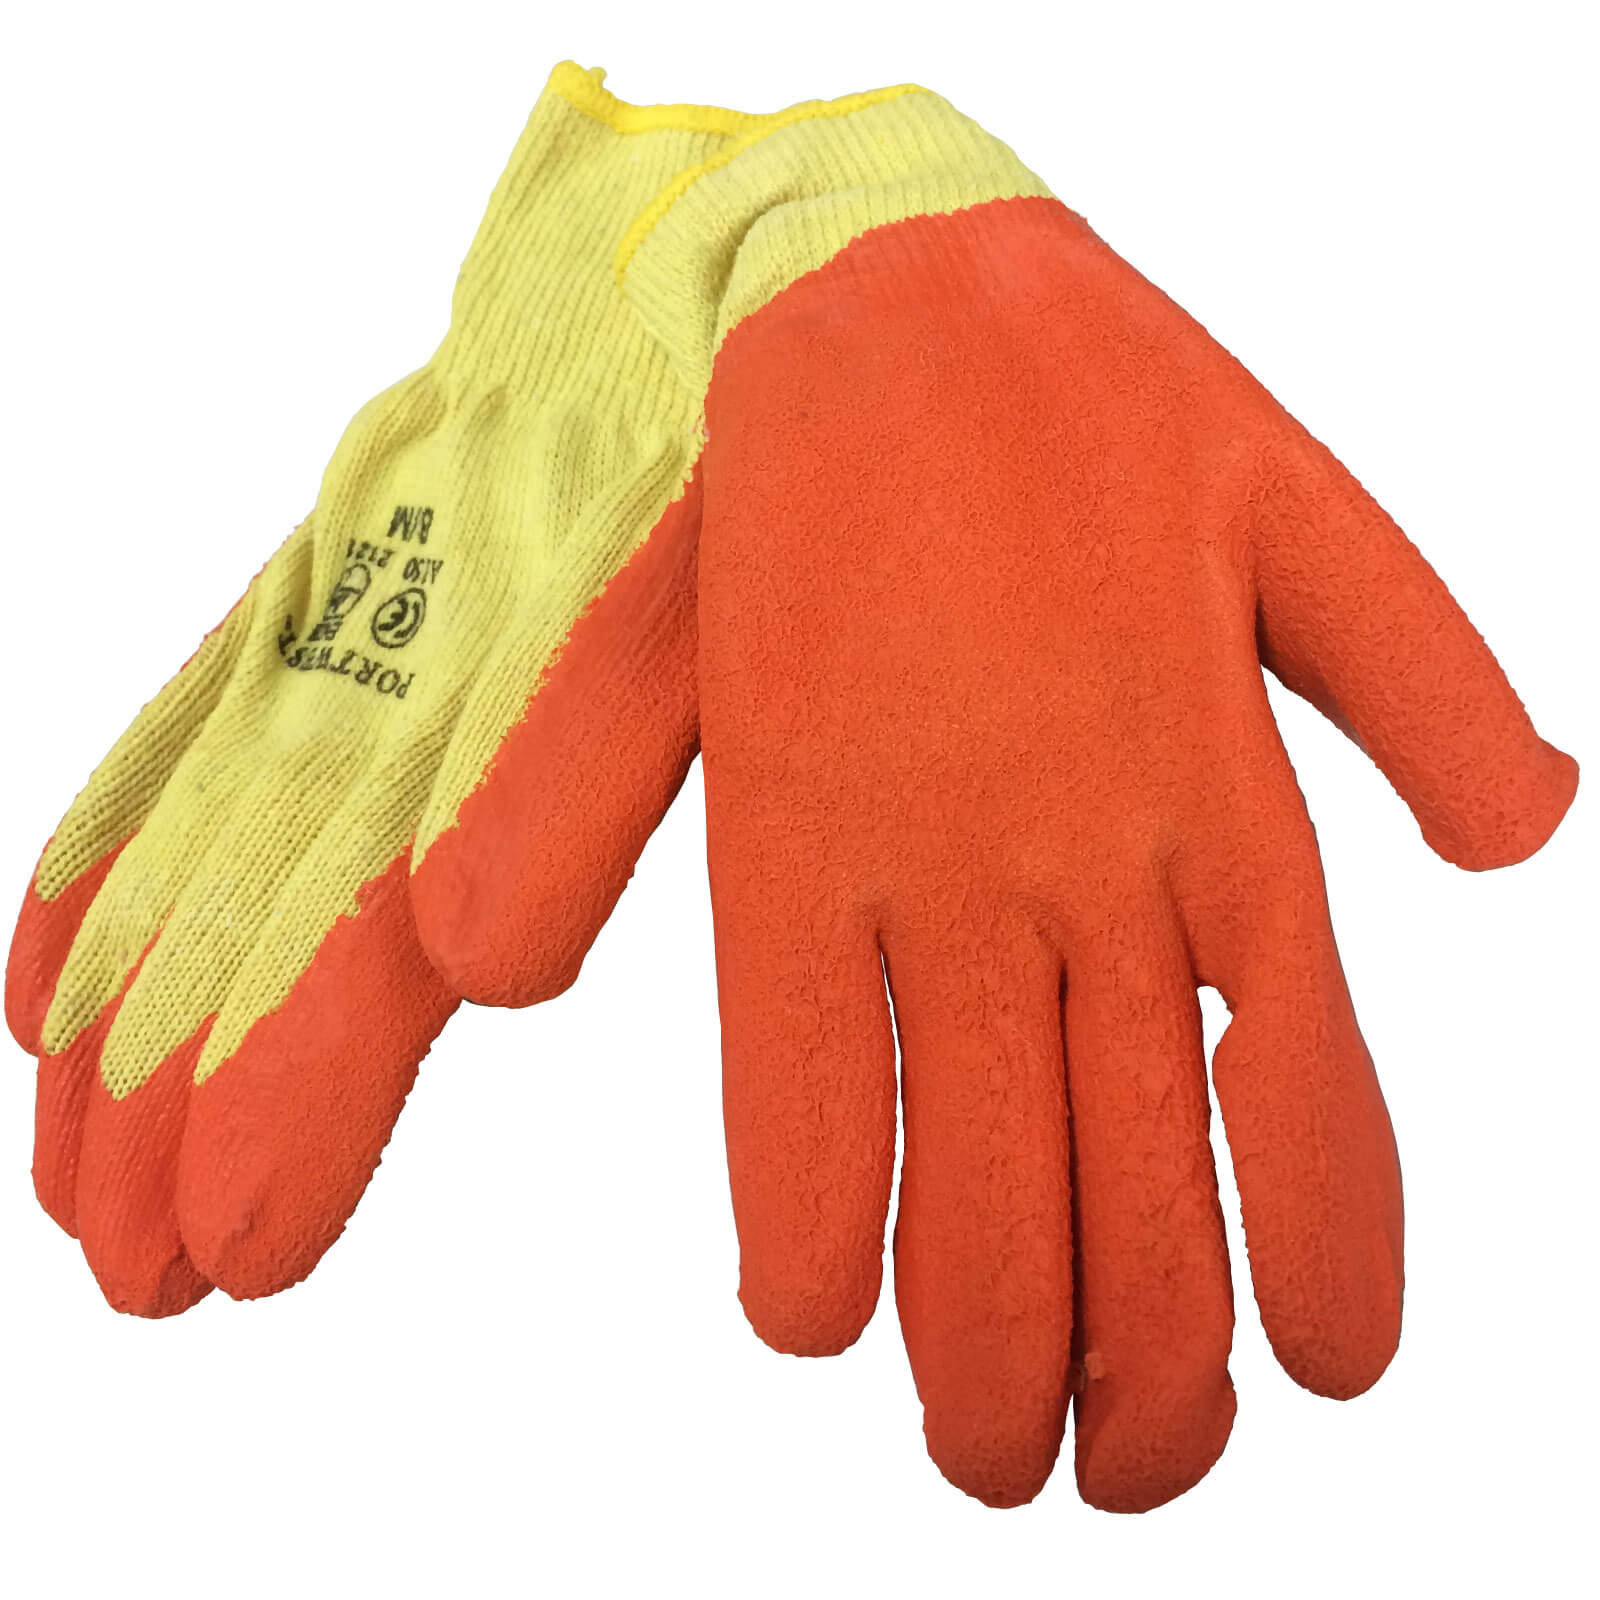 Image of Sirius Builders Grip Gloves L